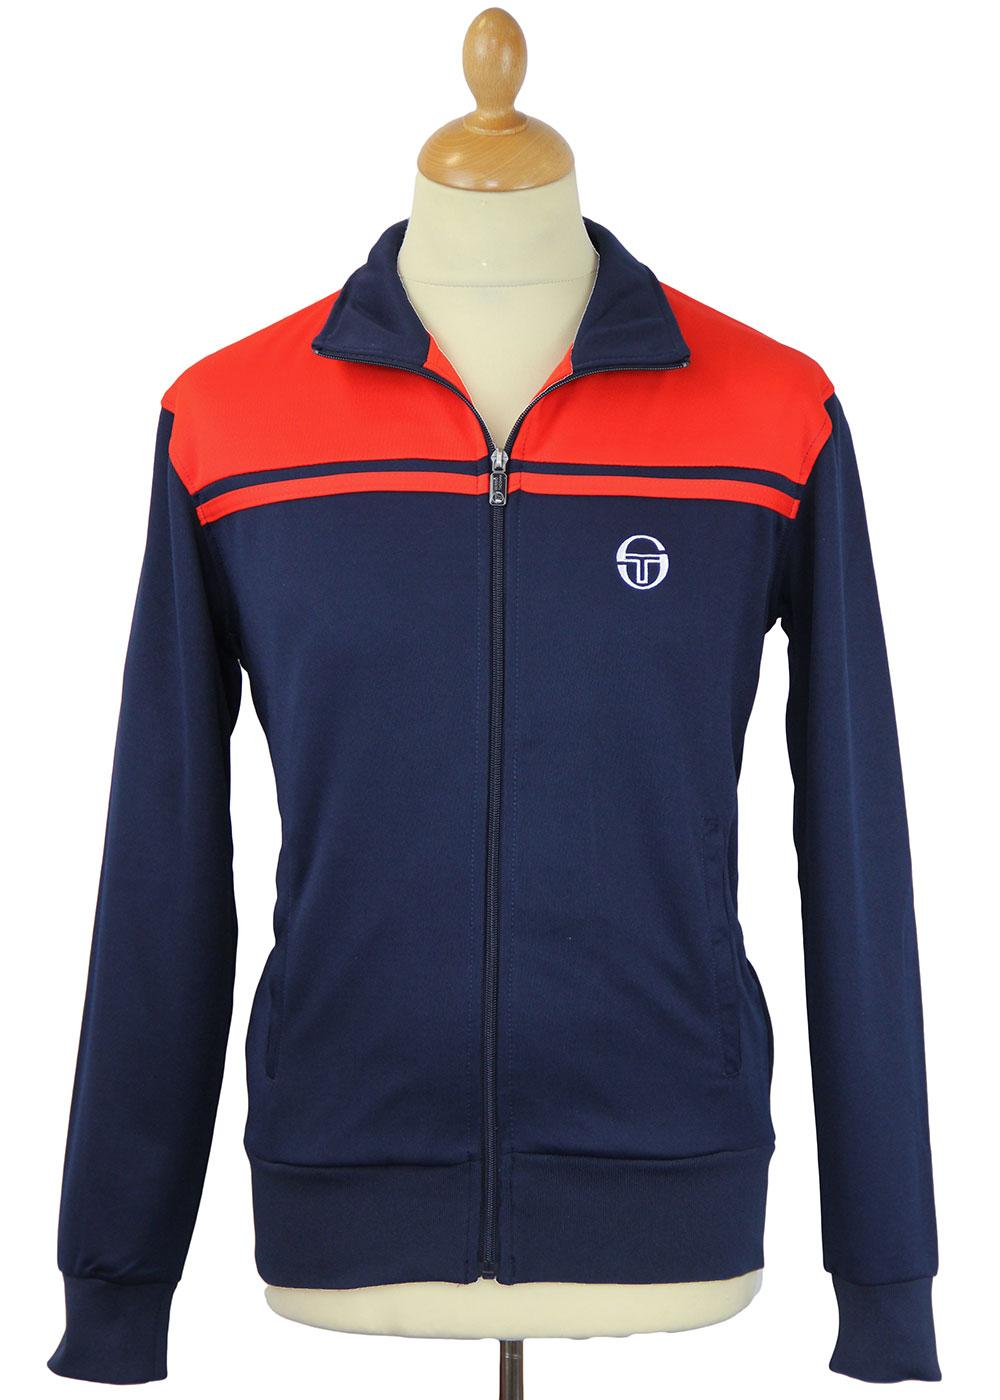 sergio tacchini retro 80s indie young line track jacket navy. Black Bedroom Furniture Sets. Home Design Ideas